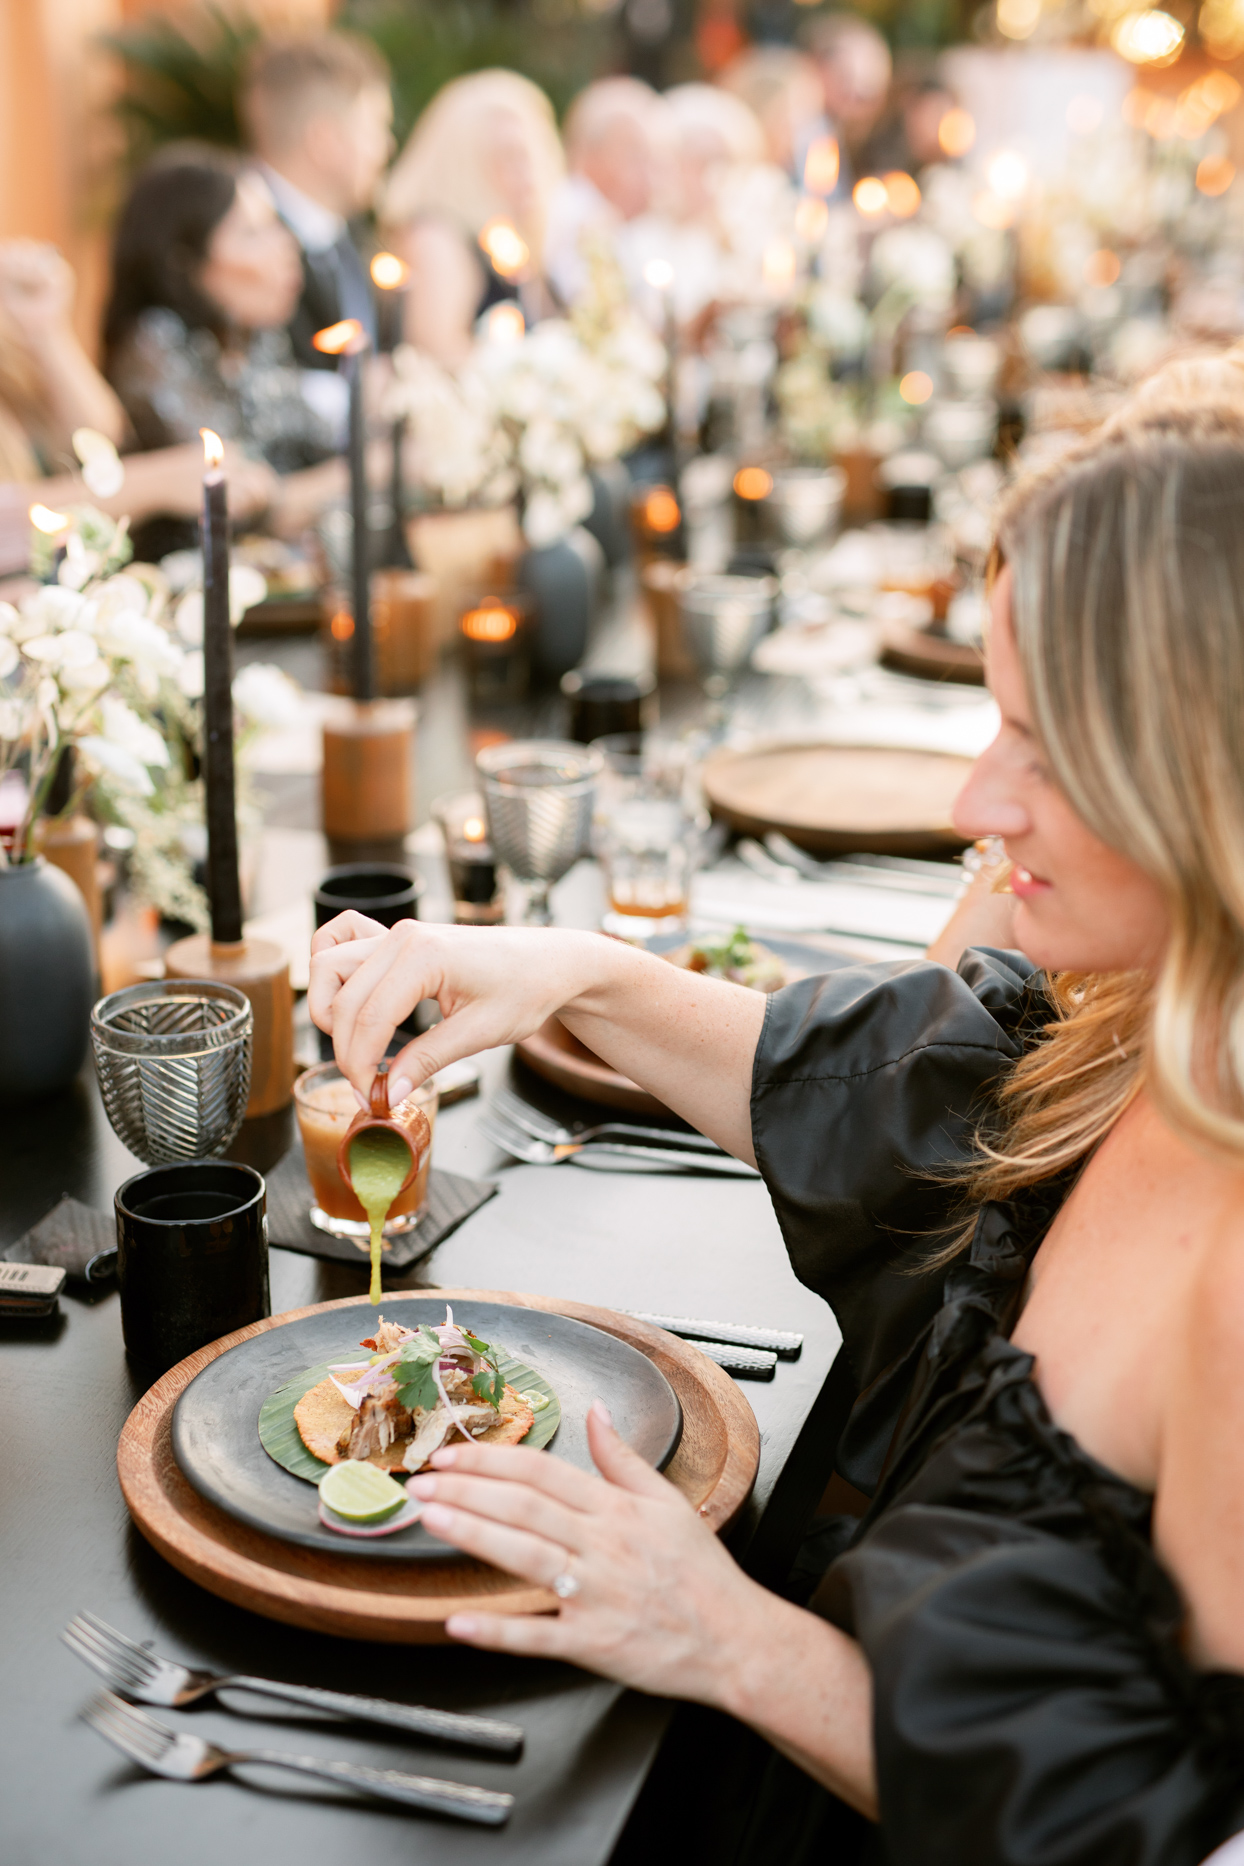 guesting pouring sauce on elegant wedding taco at reception